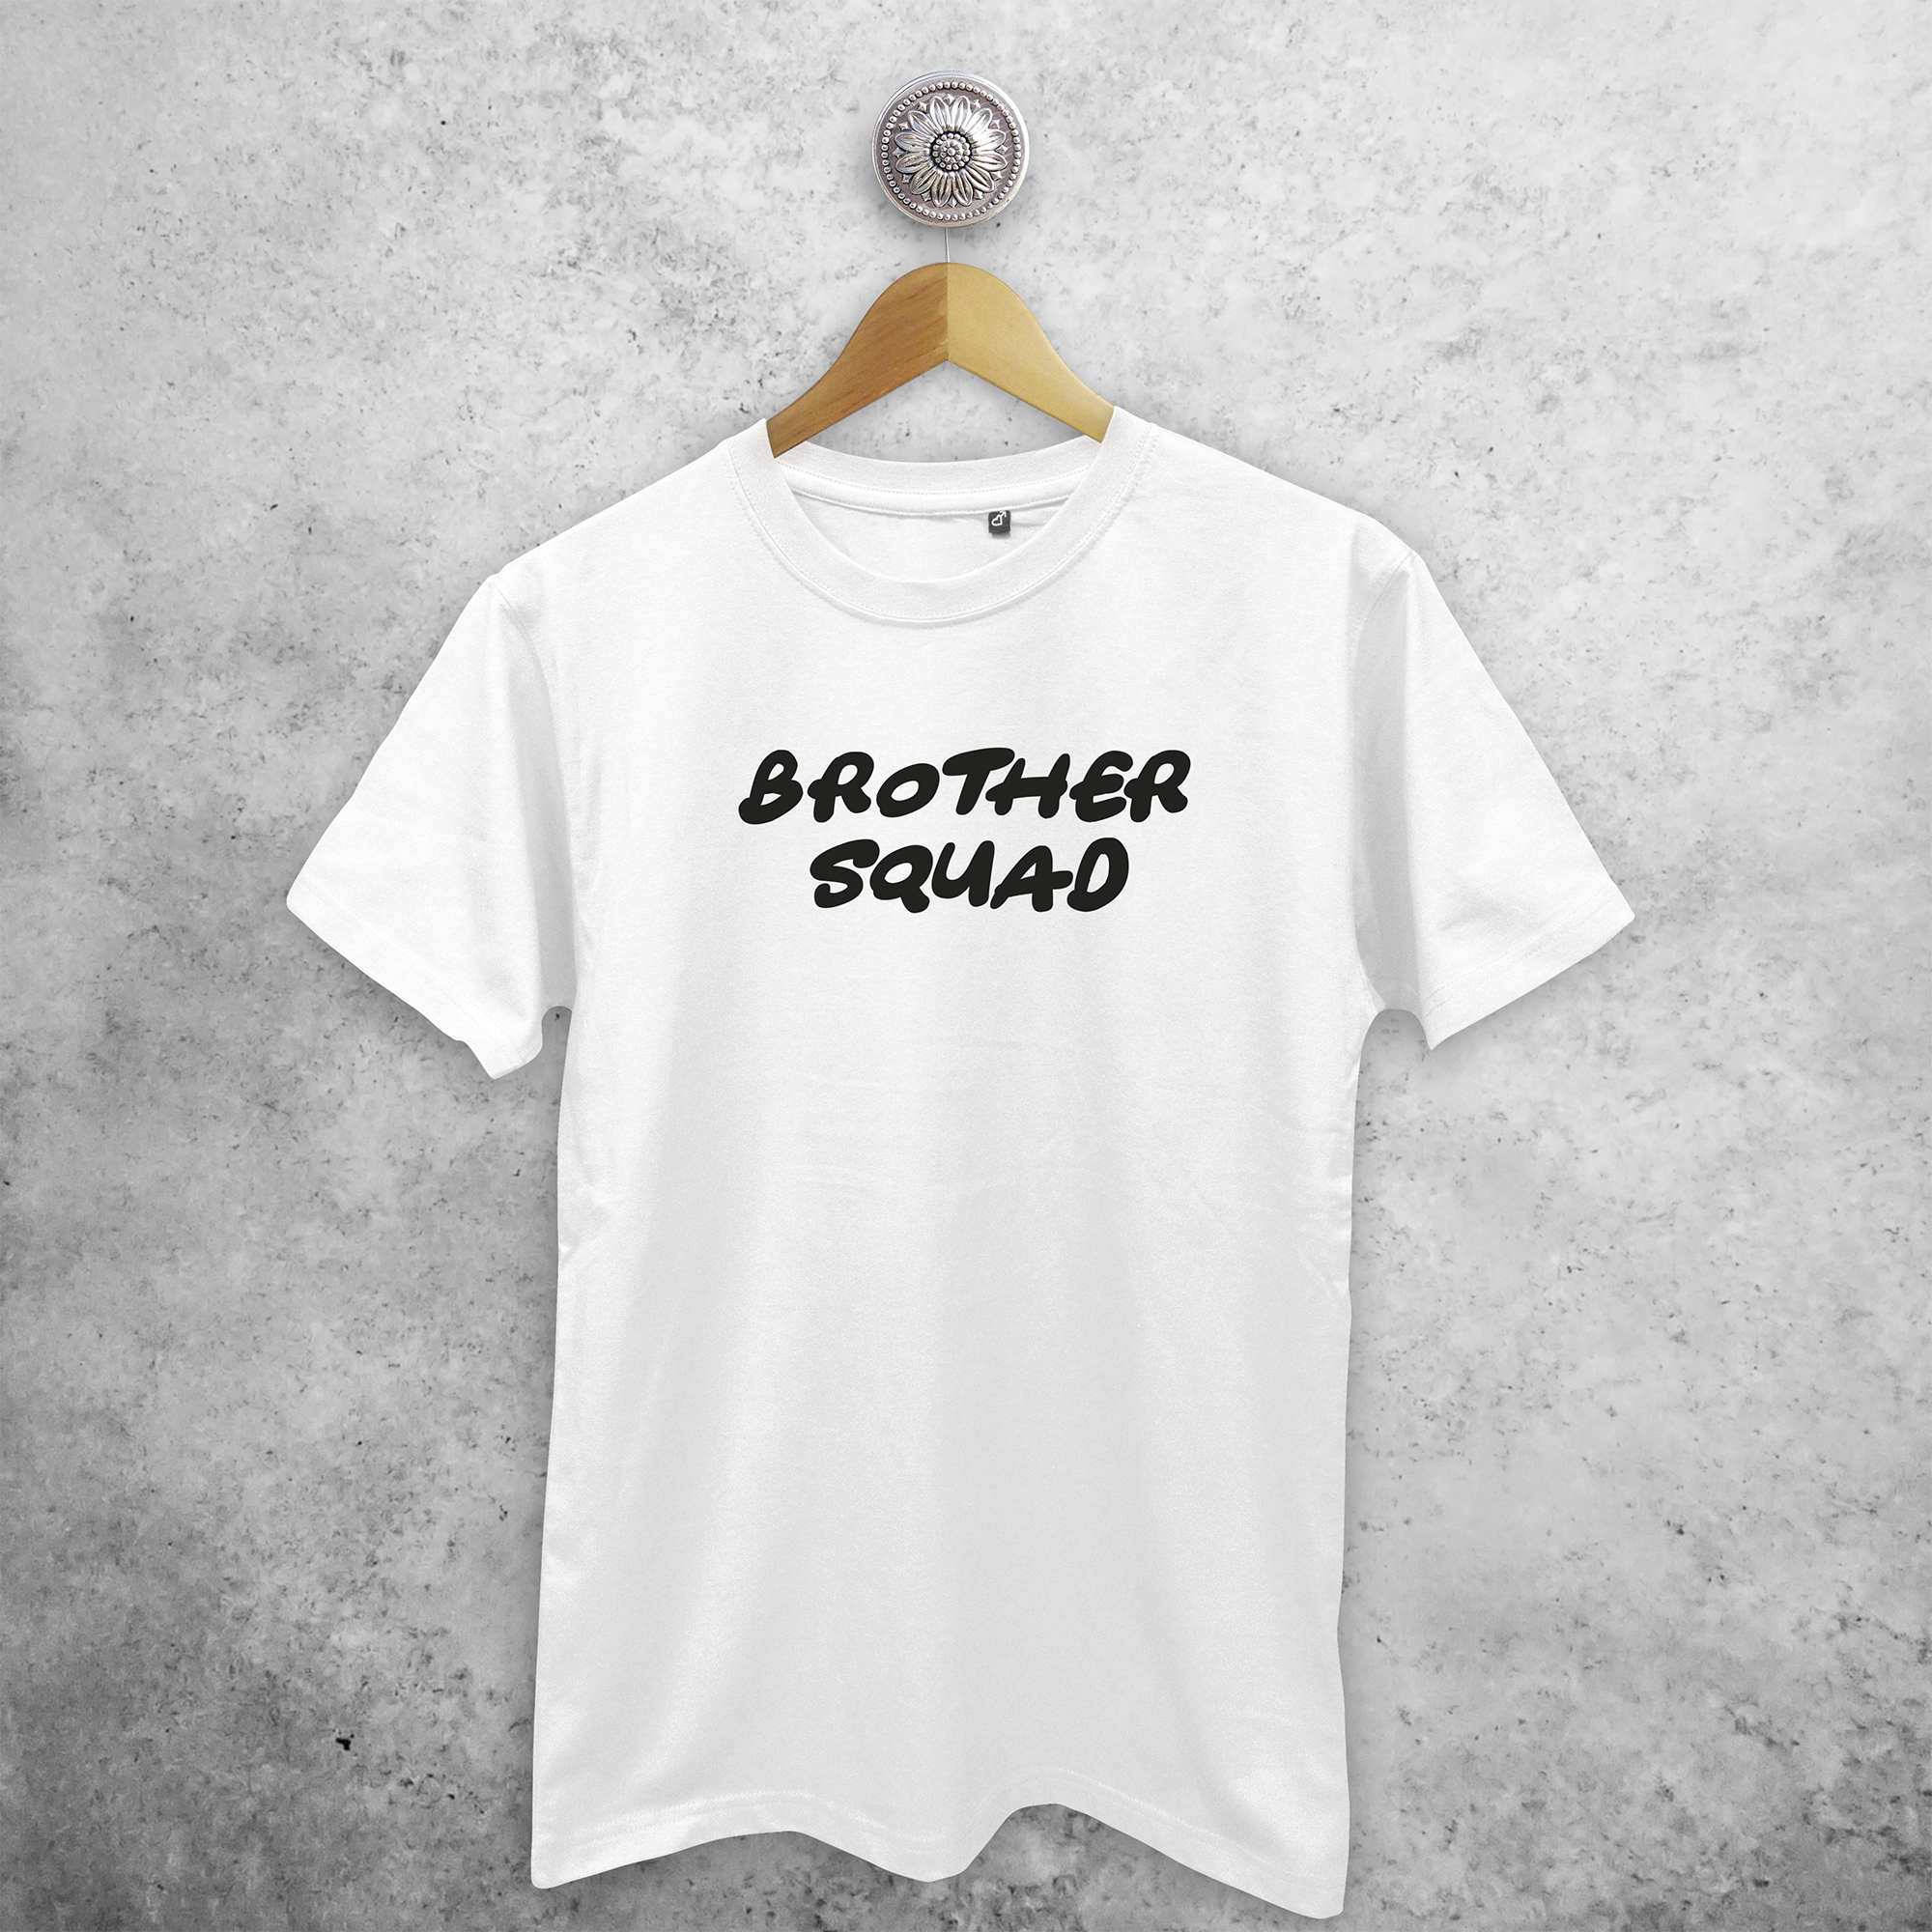 'Brother squad' adult shirt